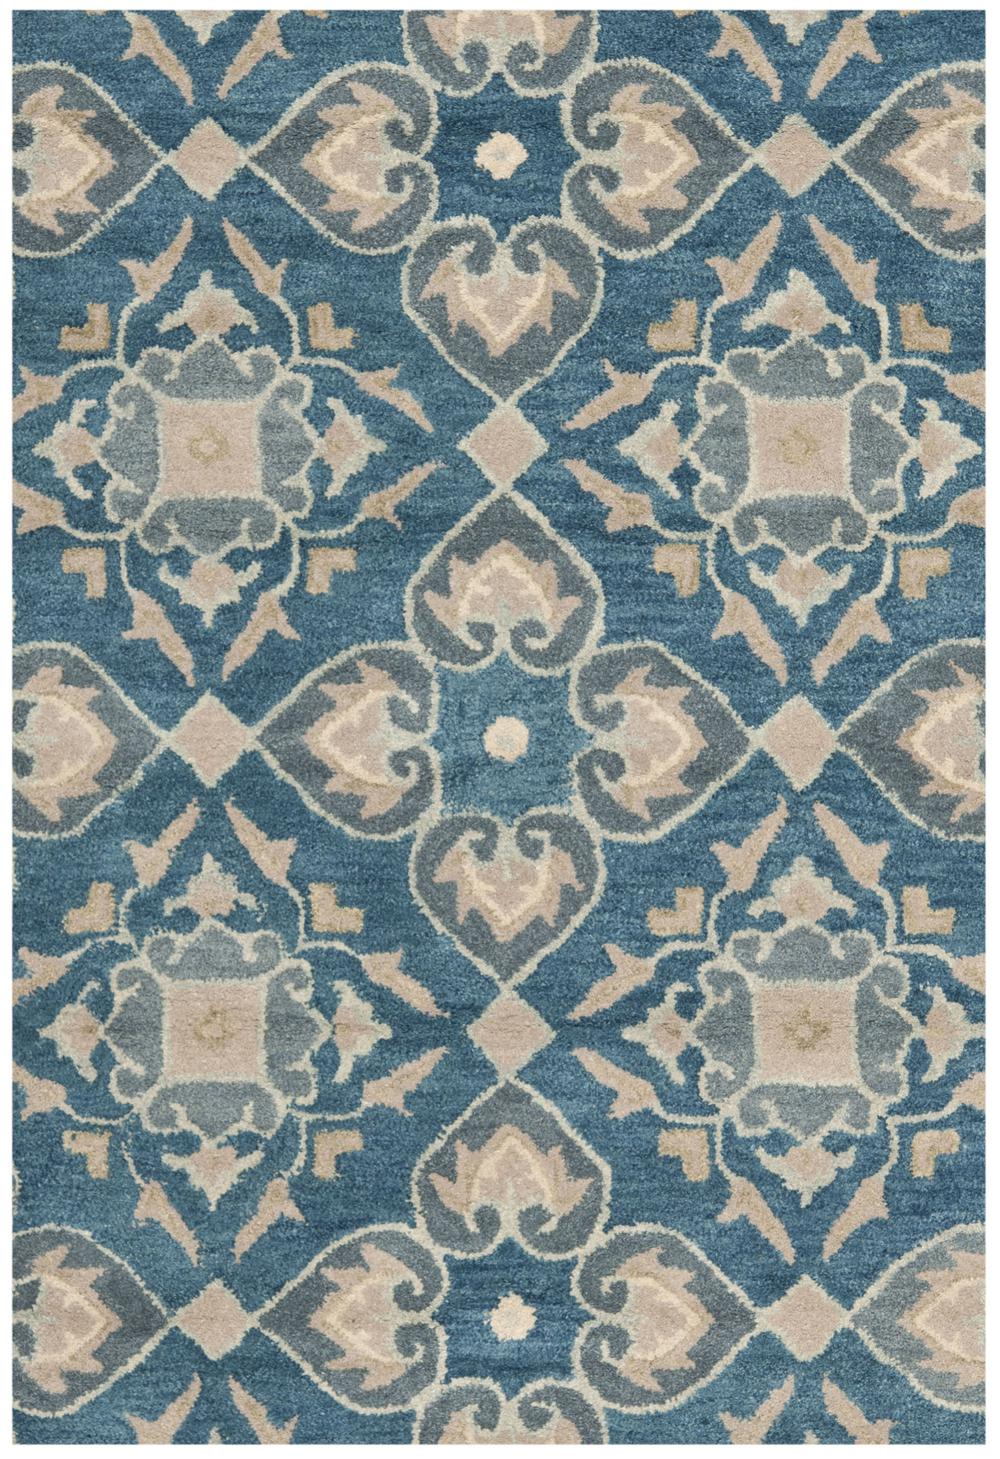 Safavieh Wyndham WYD614A Blue and Grey Area Rug  Free